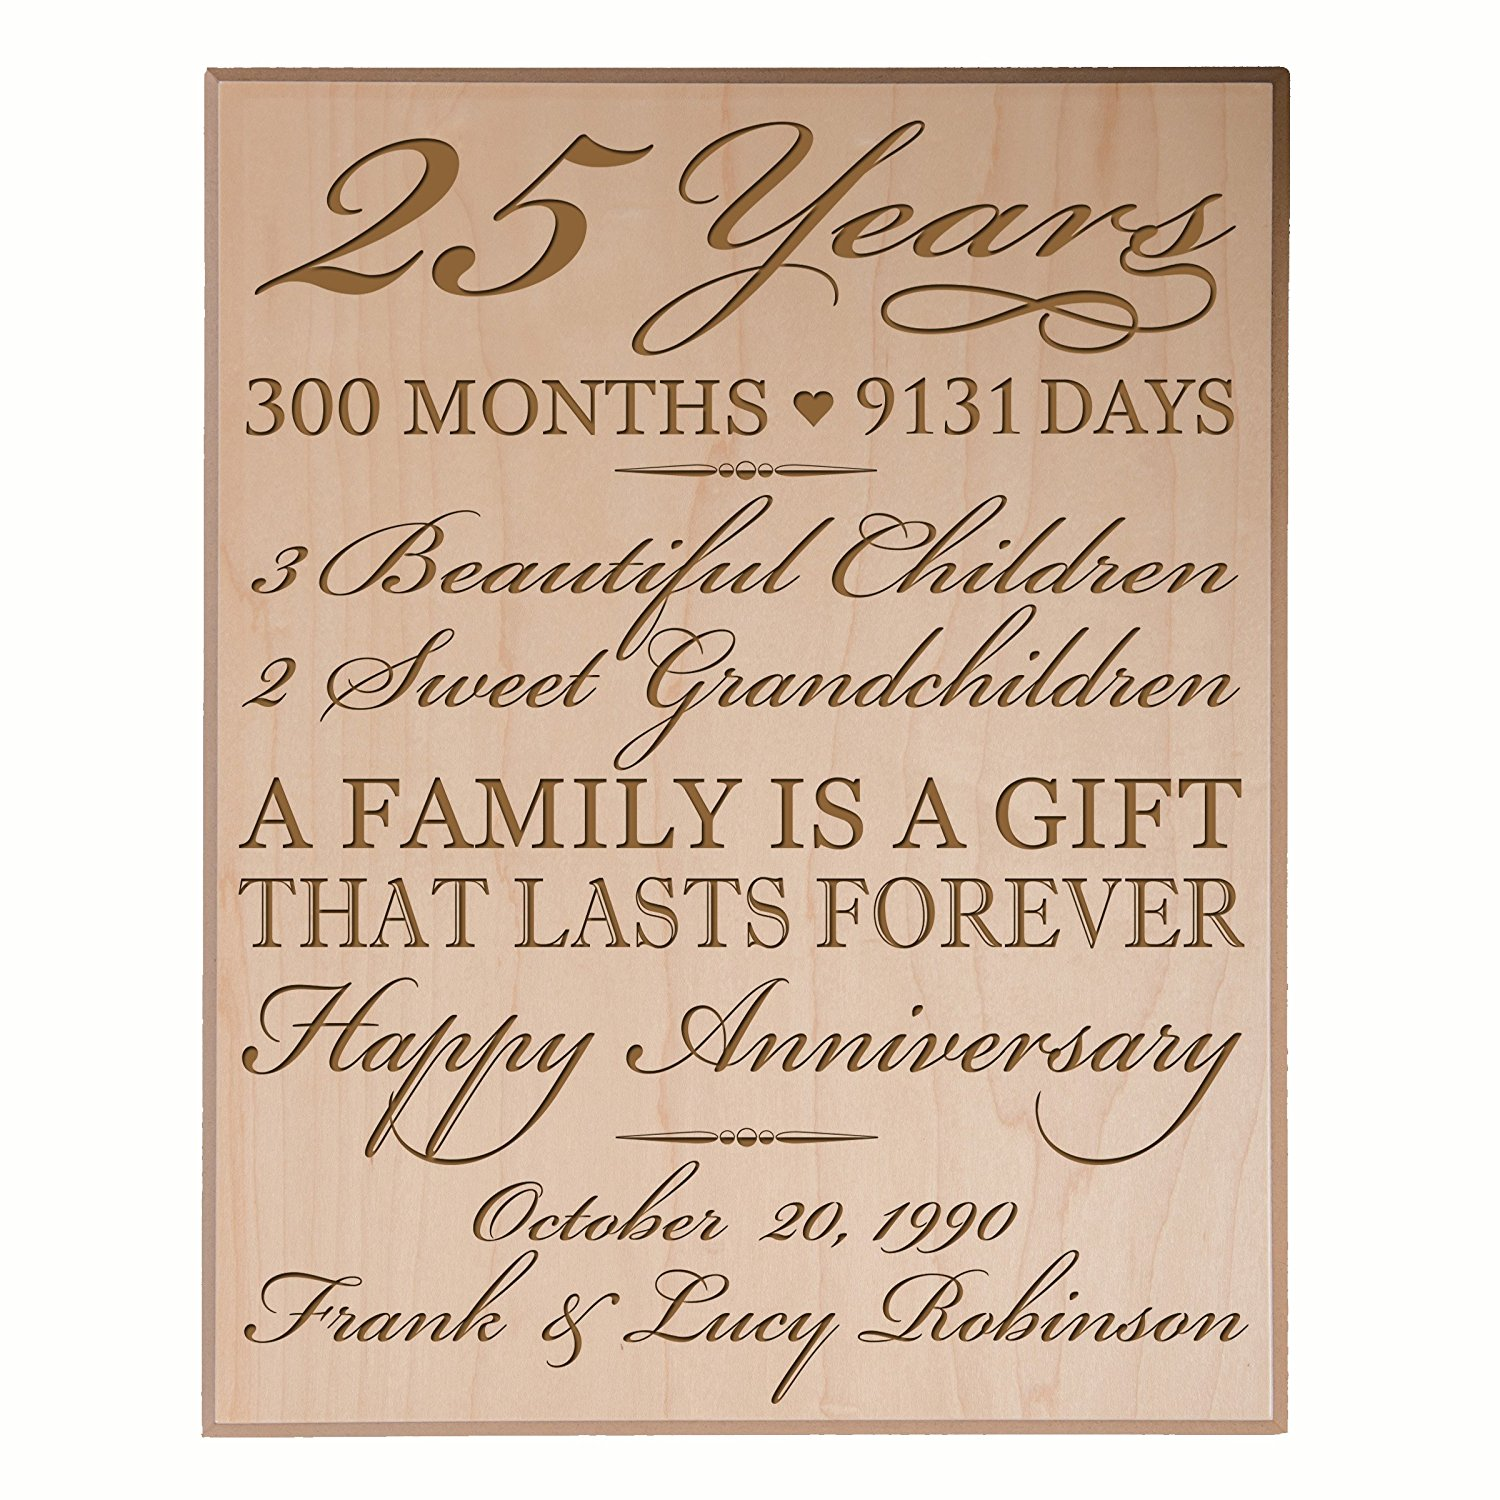 Buy Personalized 25th Anniversary Gifts For Him Her Couple Parents Custom Made 25 Year Anniversary Gifts Ideas Wall Plaque 12 X 15 By Dayspring Milestones Maple Veneer In Cheap Price On Alibaba Com